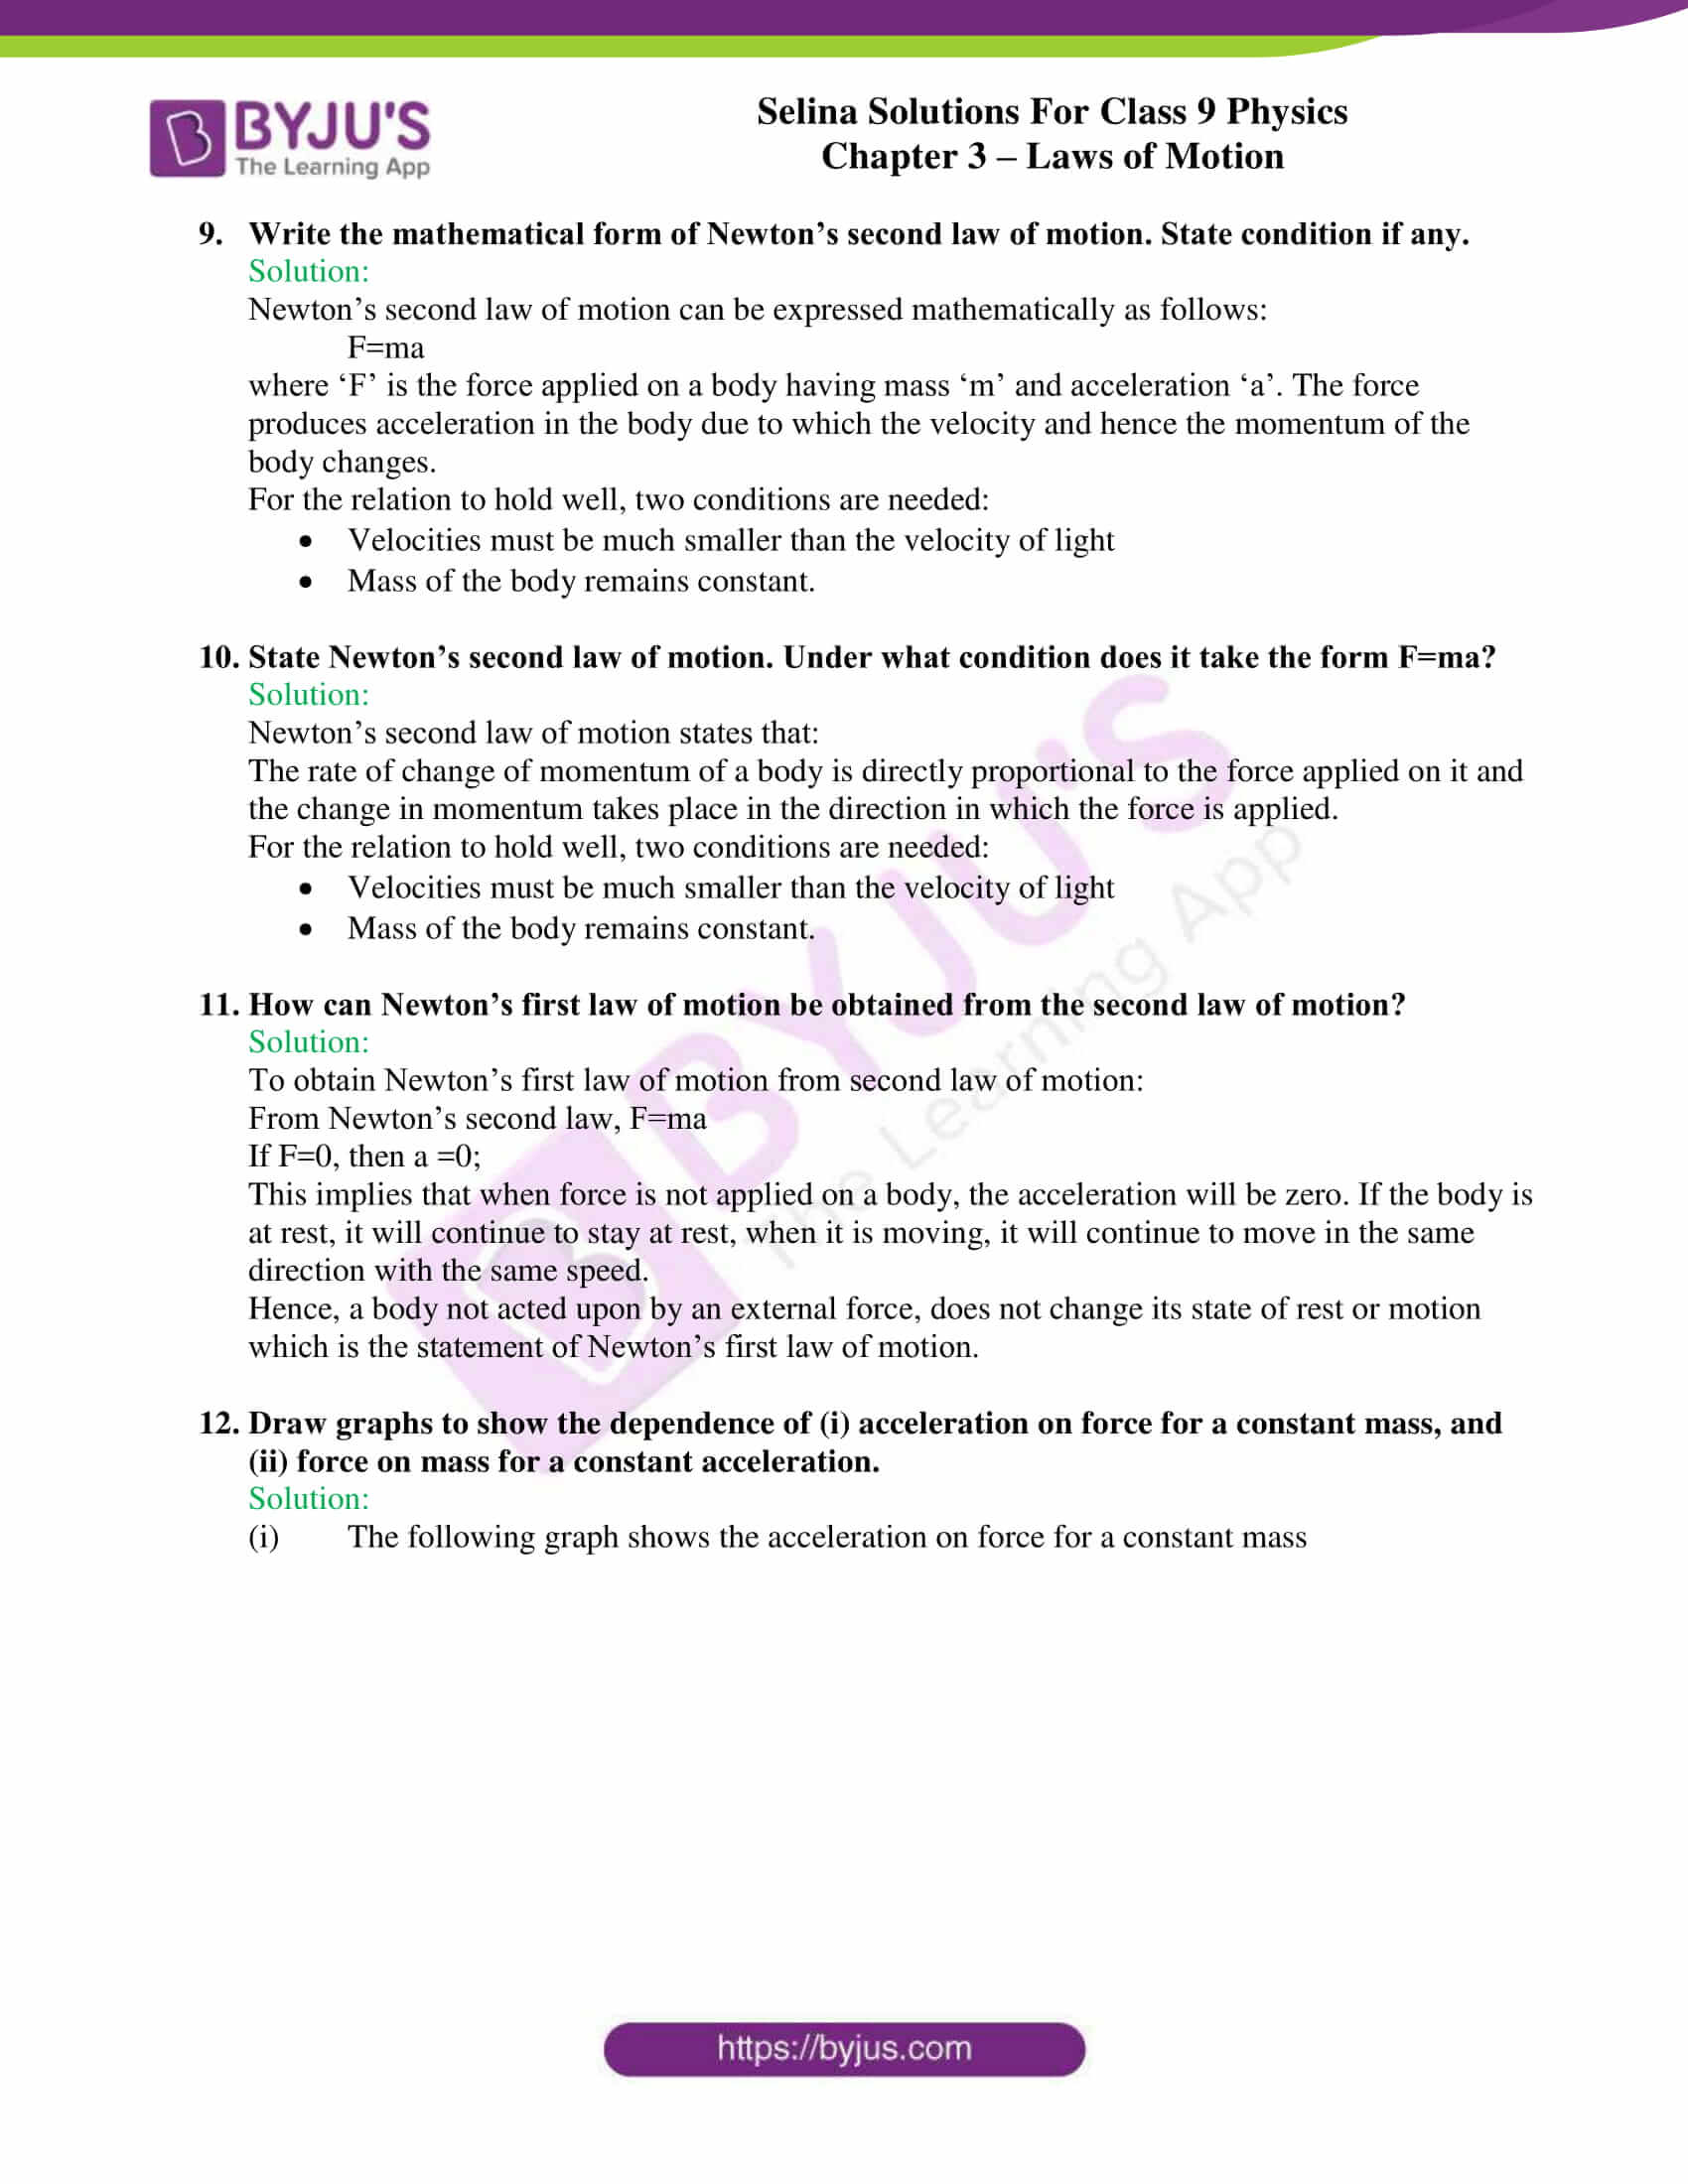 selina solutions class 9 physics chapter 3 Laws of Motion part 12